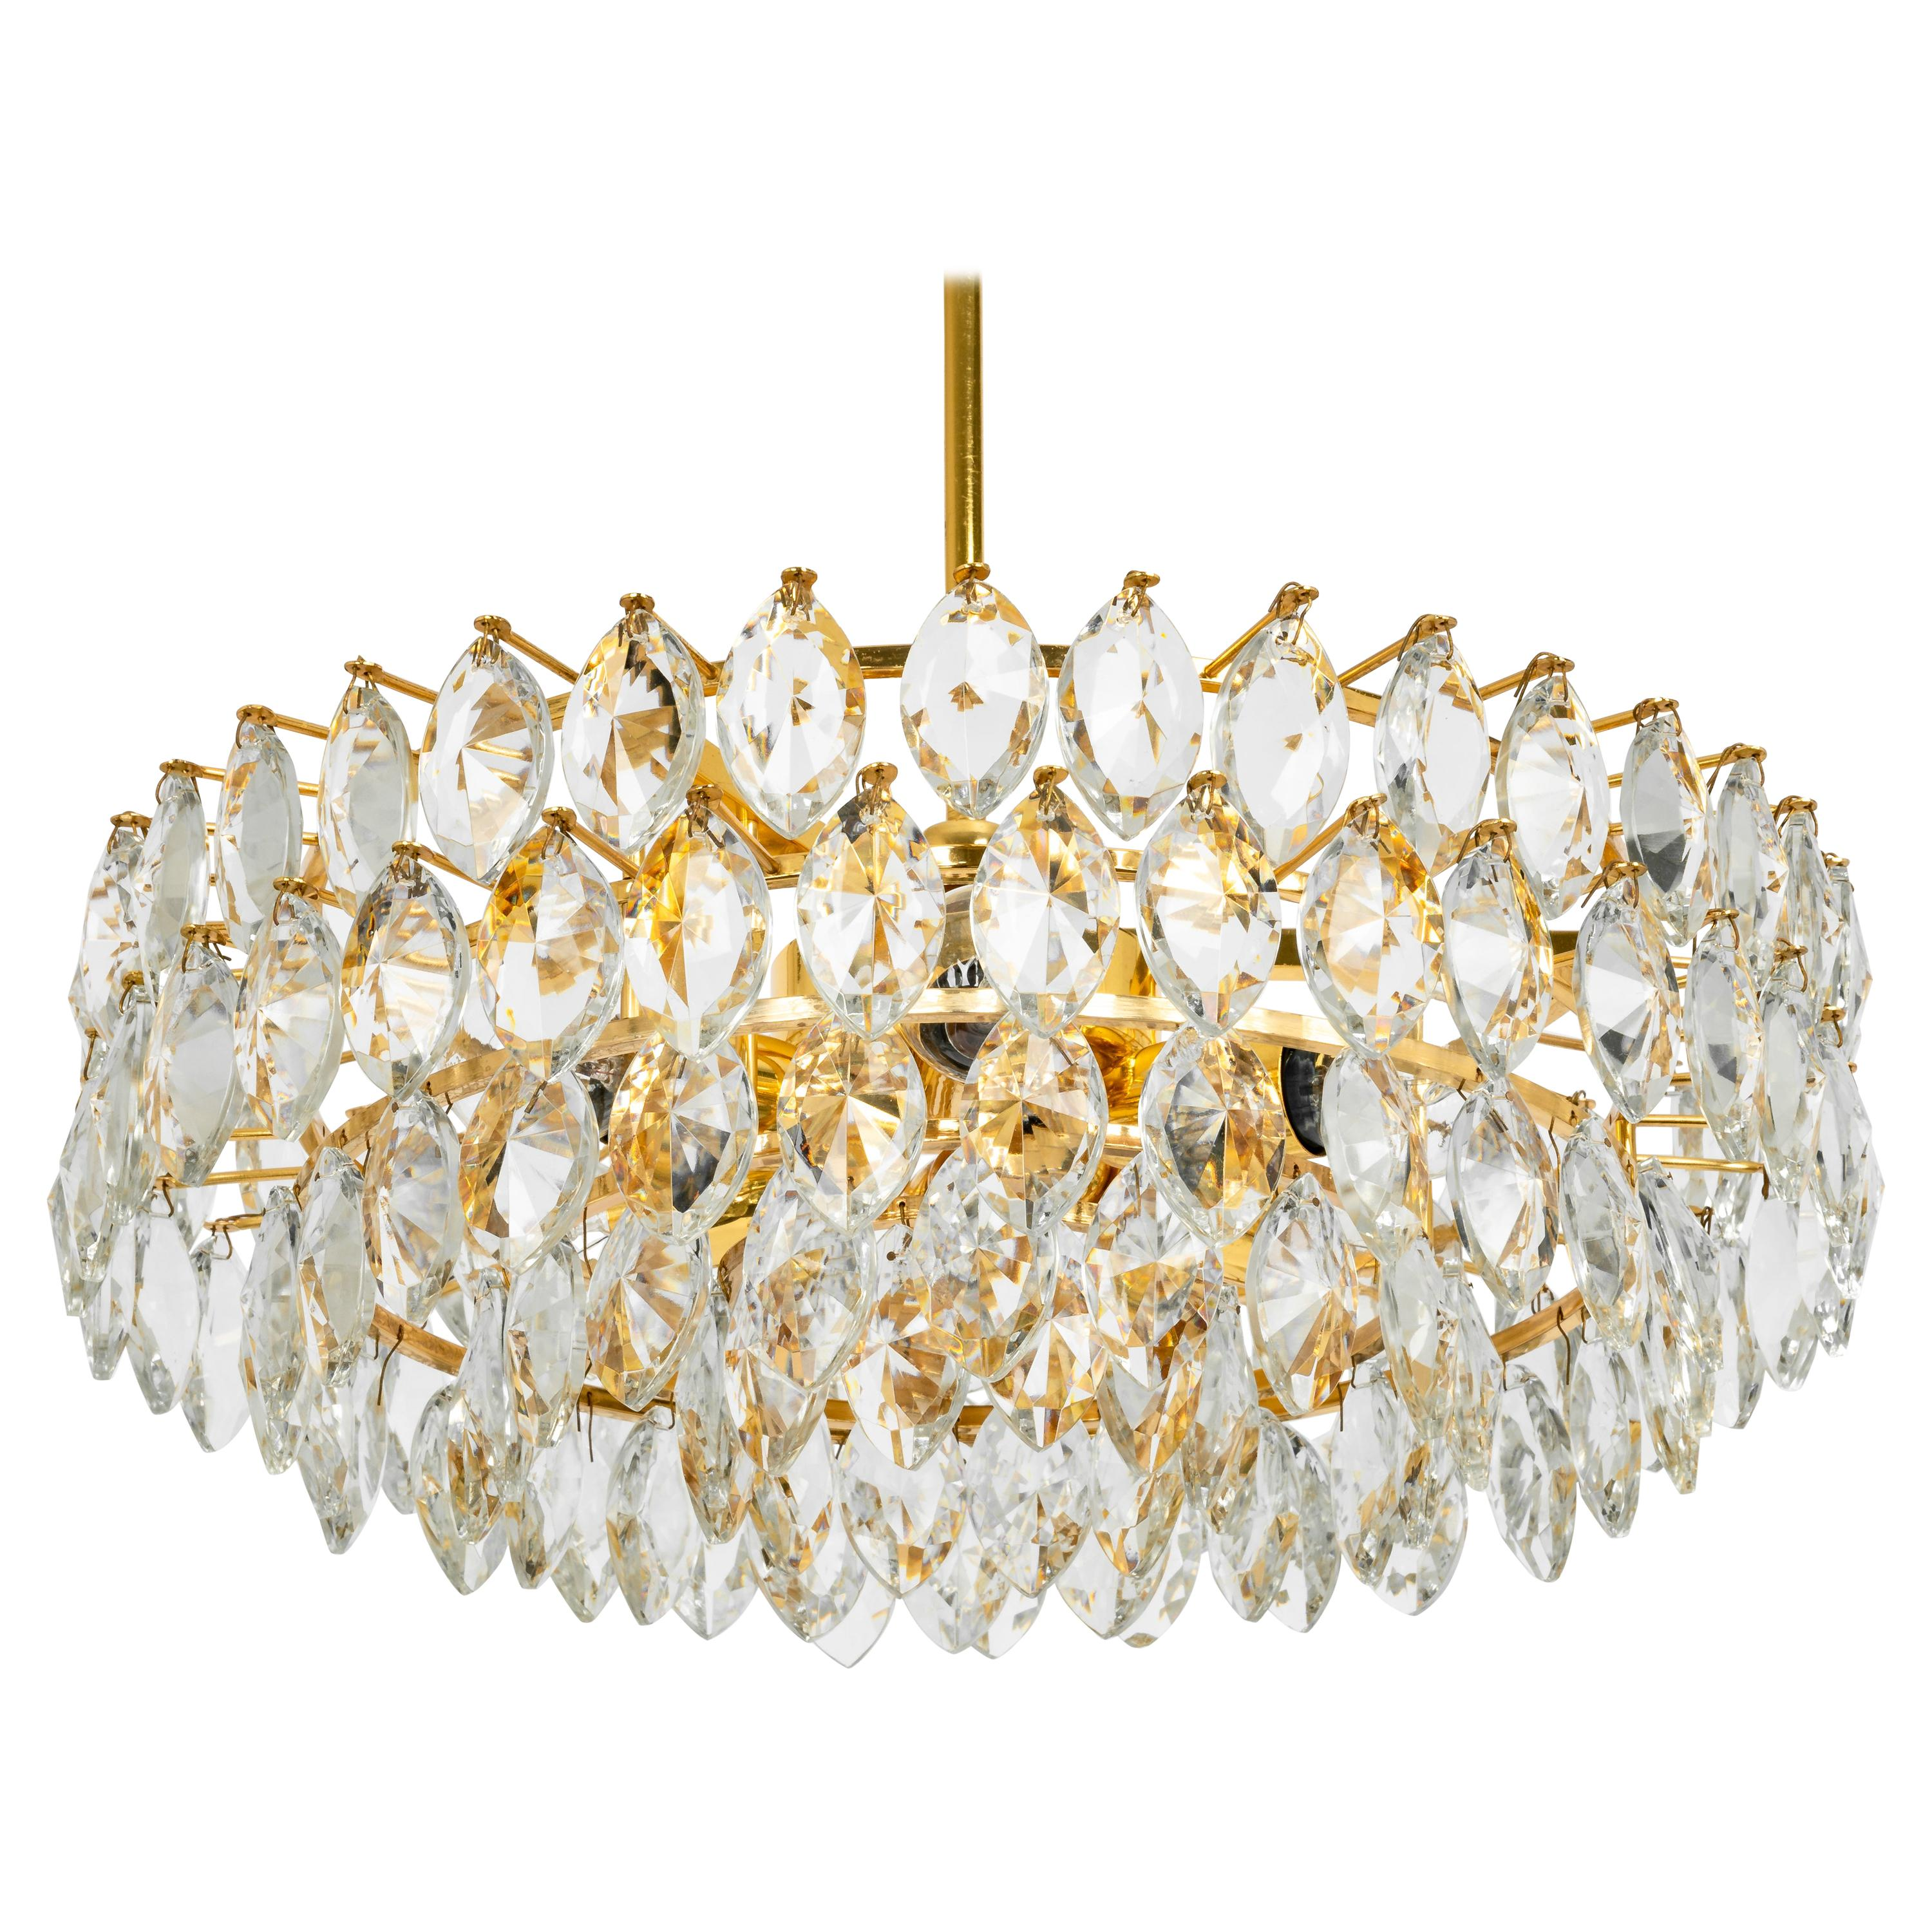 Bakalowits Chandelier Brass and Crystal Glass, Austria, 1960s